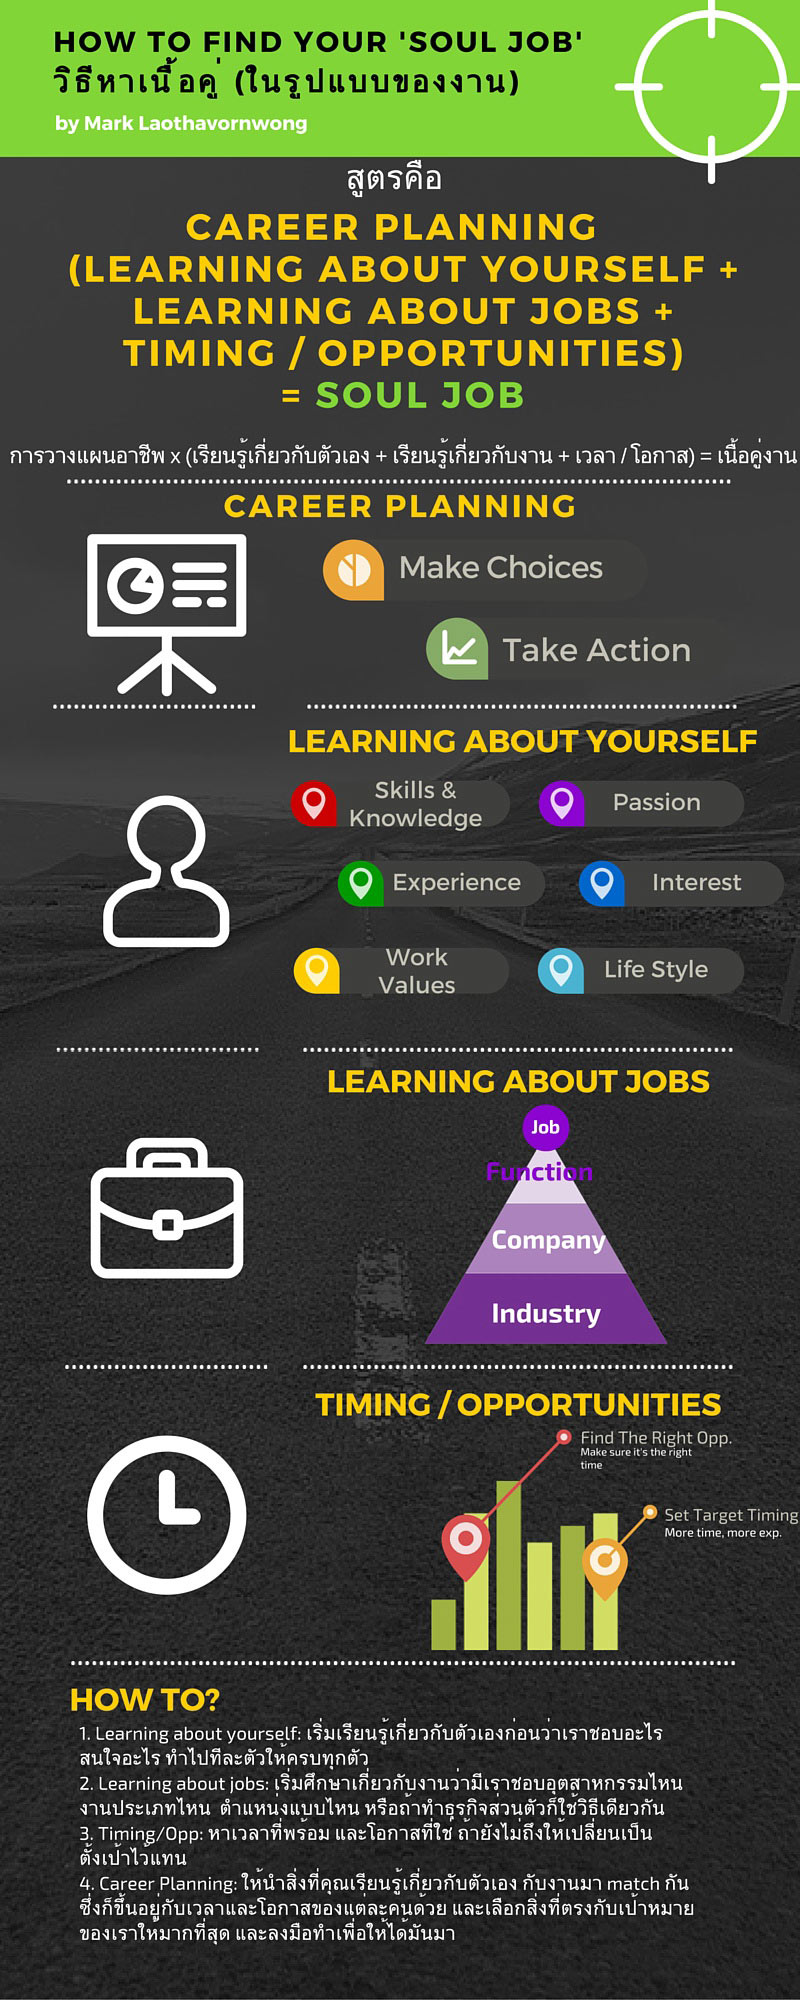 How-to-find-your-soul-job-infographic